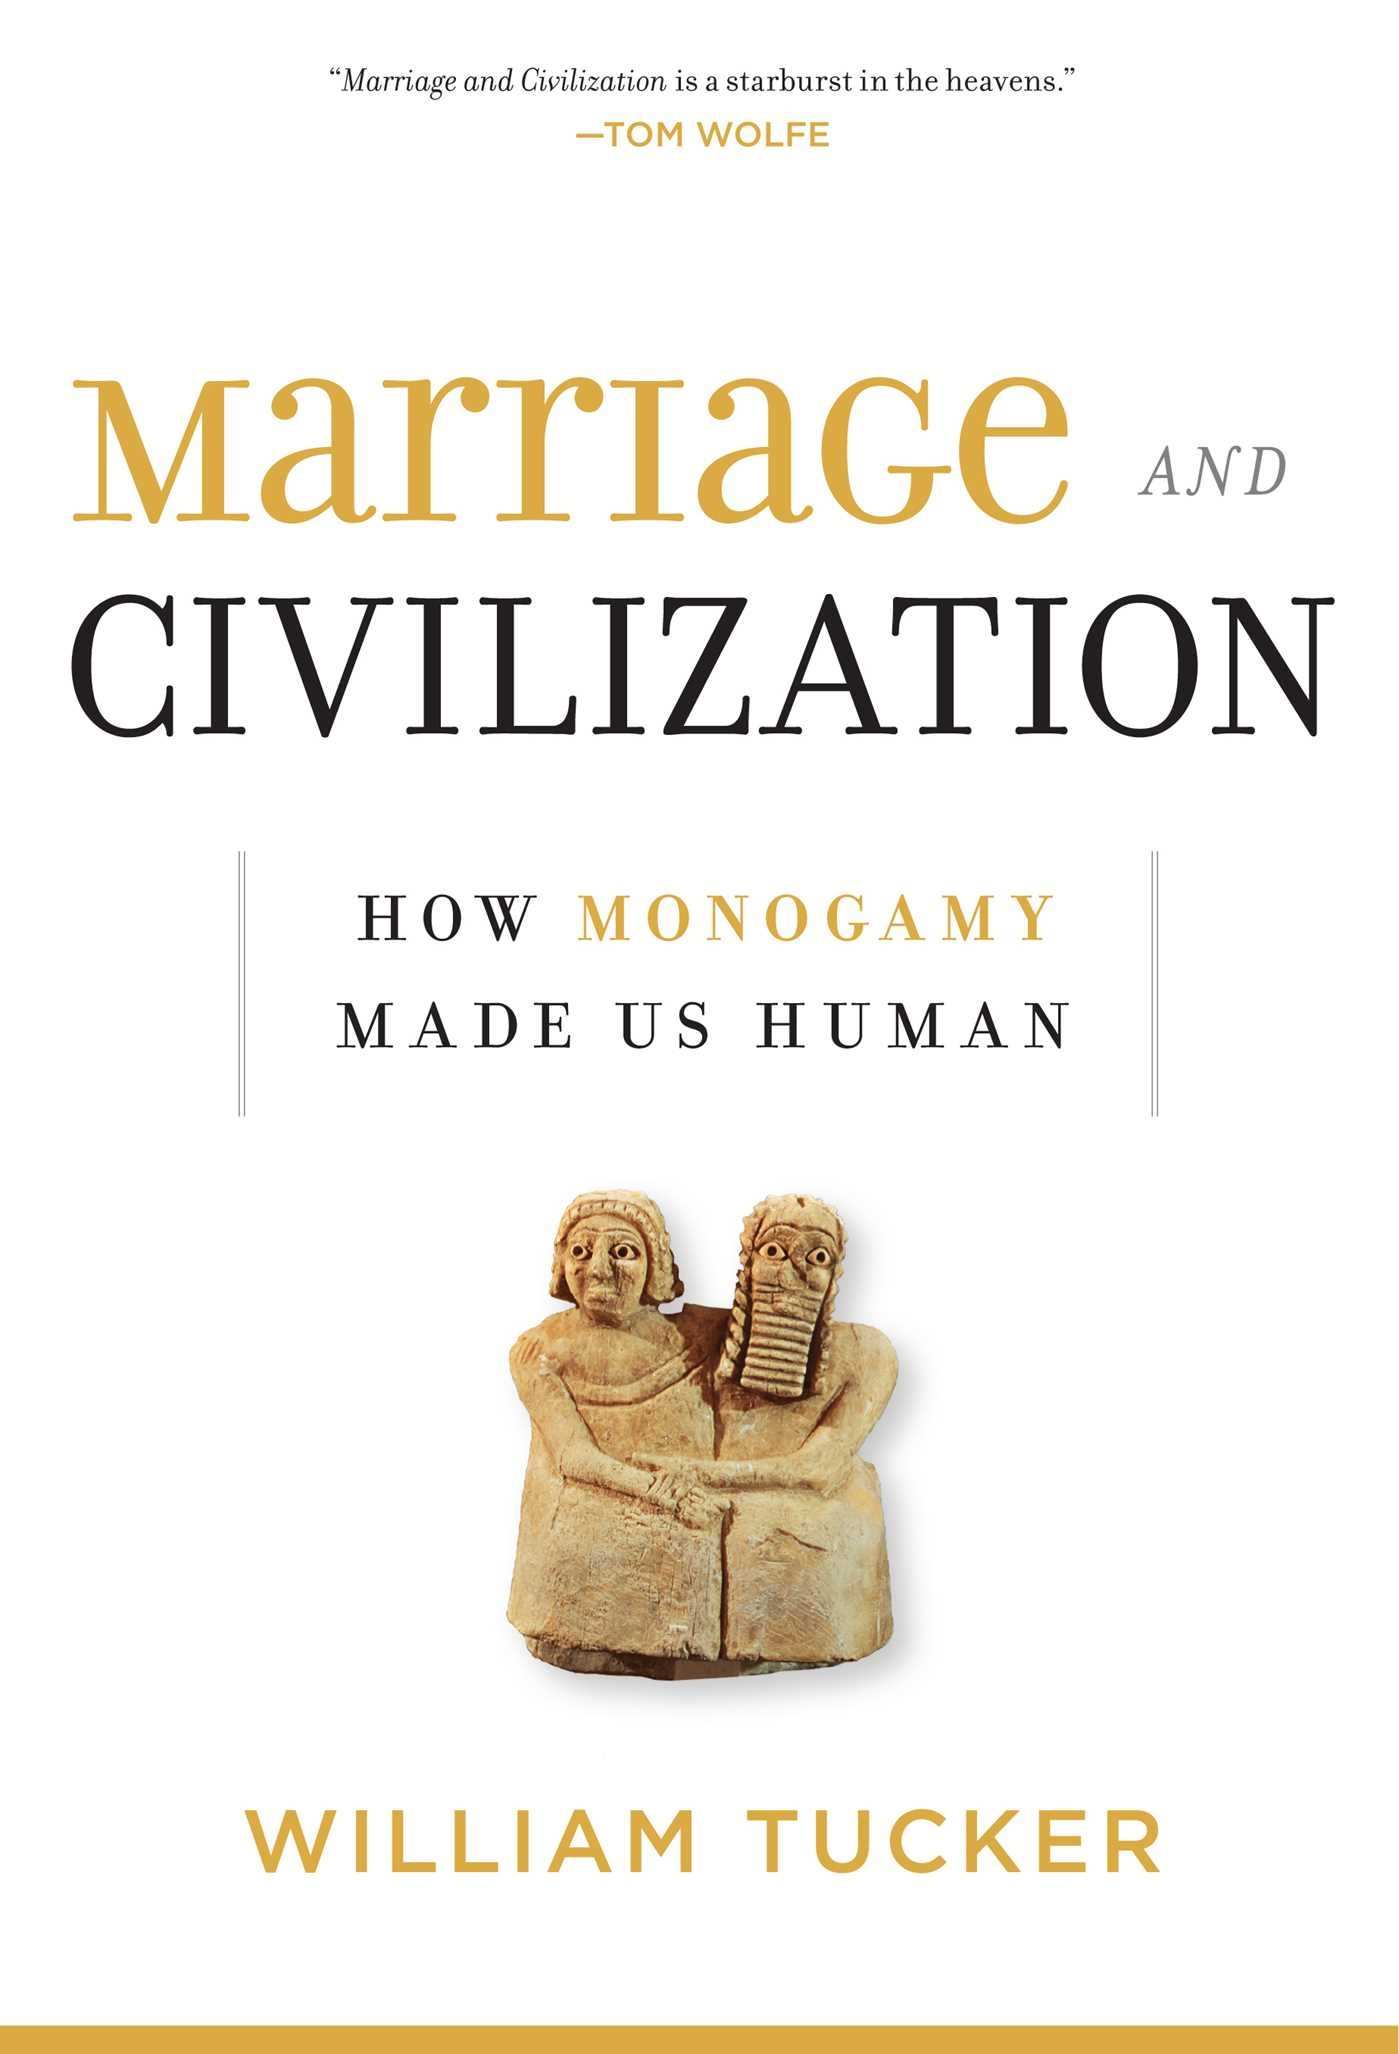 monogamy and civilization